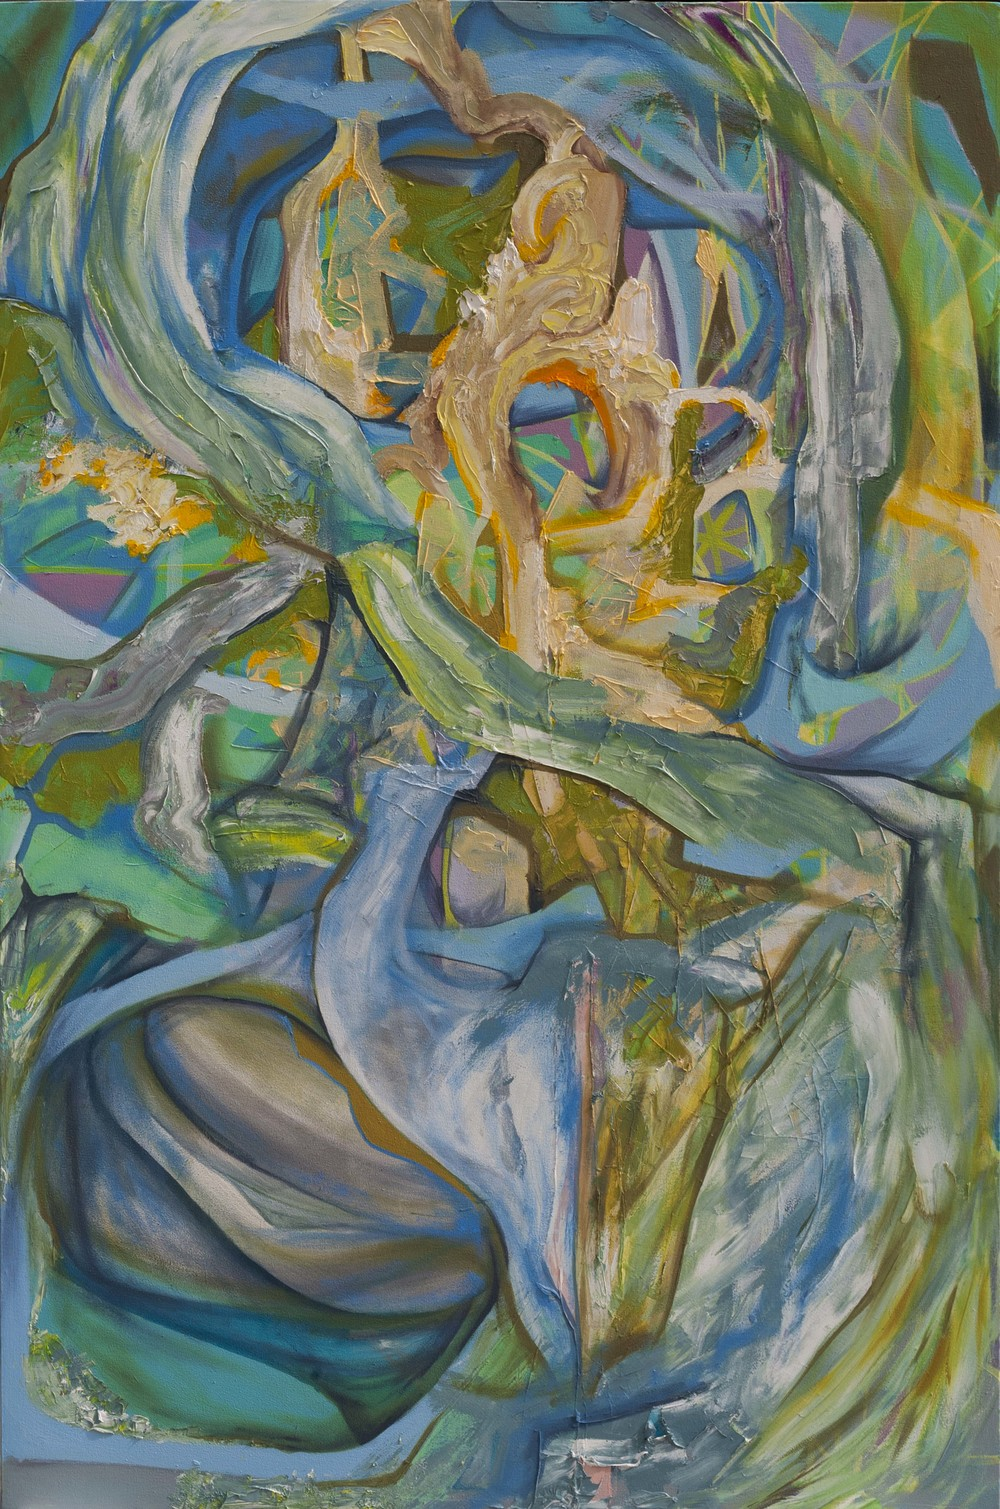 "Gem Guts, oil on canvas, 72"" x 48"", 2015"